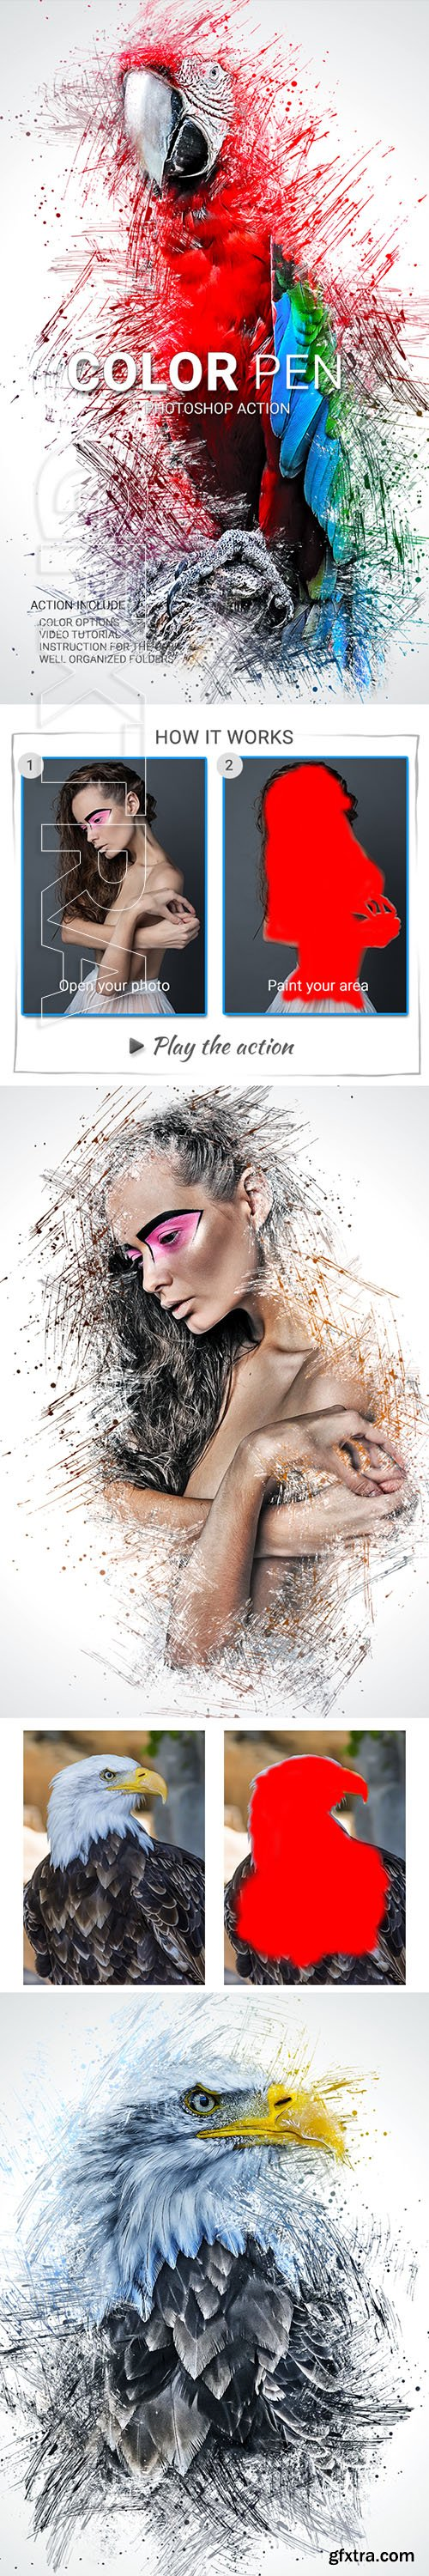 GraphicRiver - Color Pen Photoshop Action 22823757